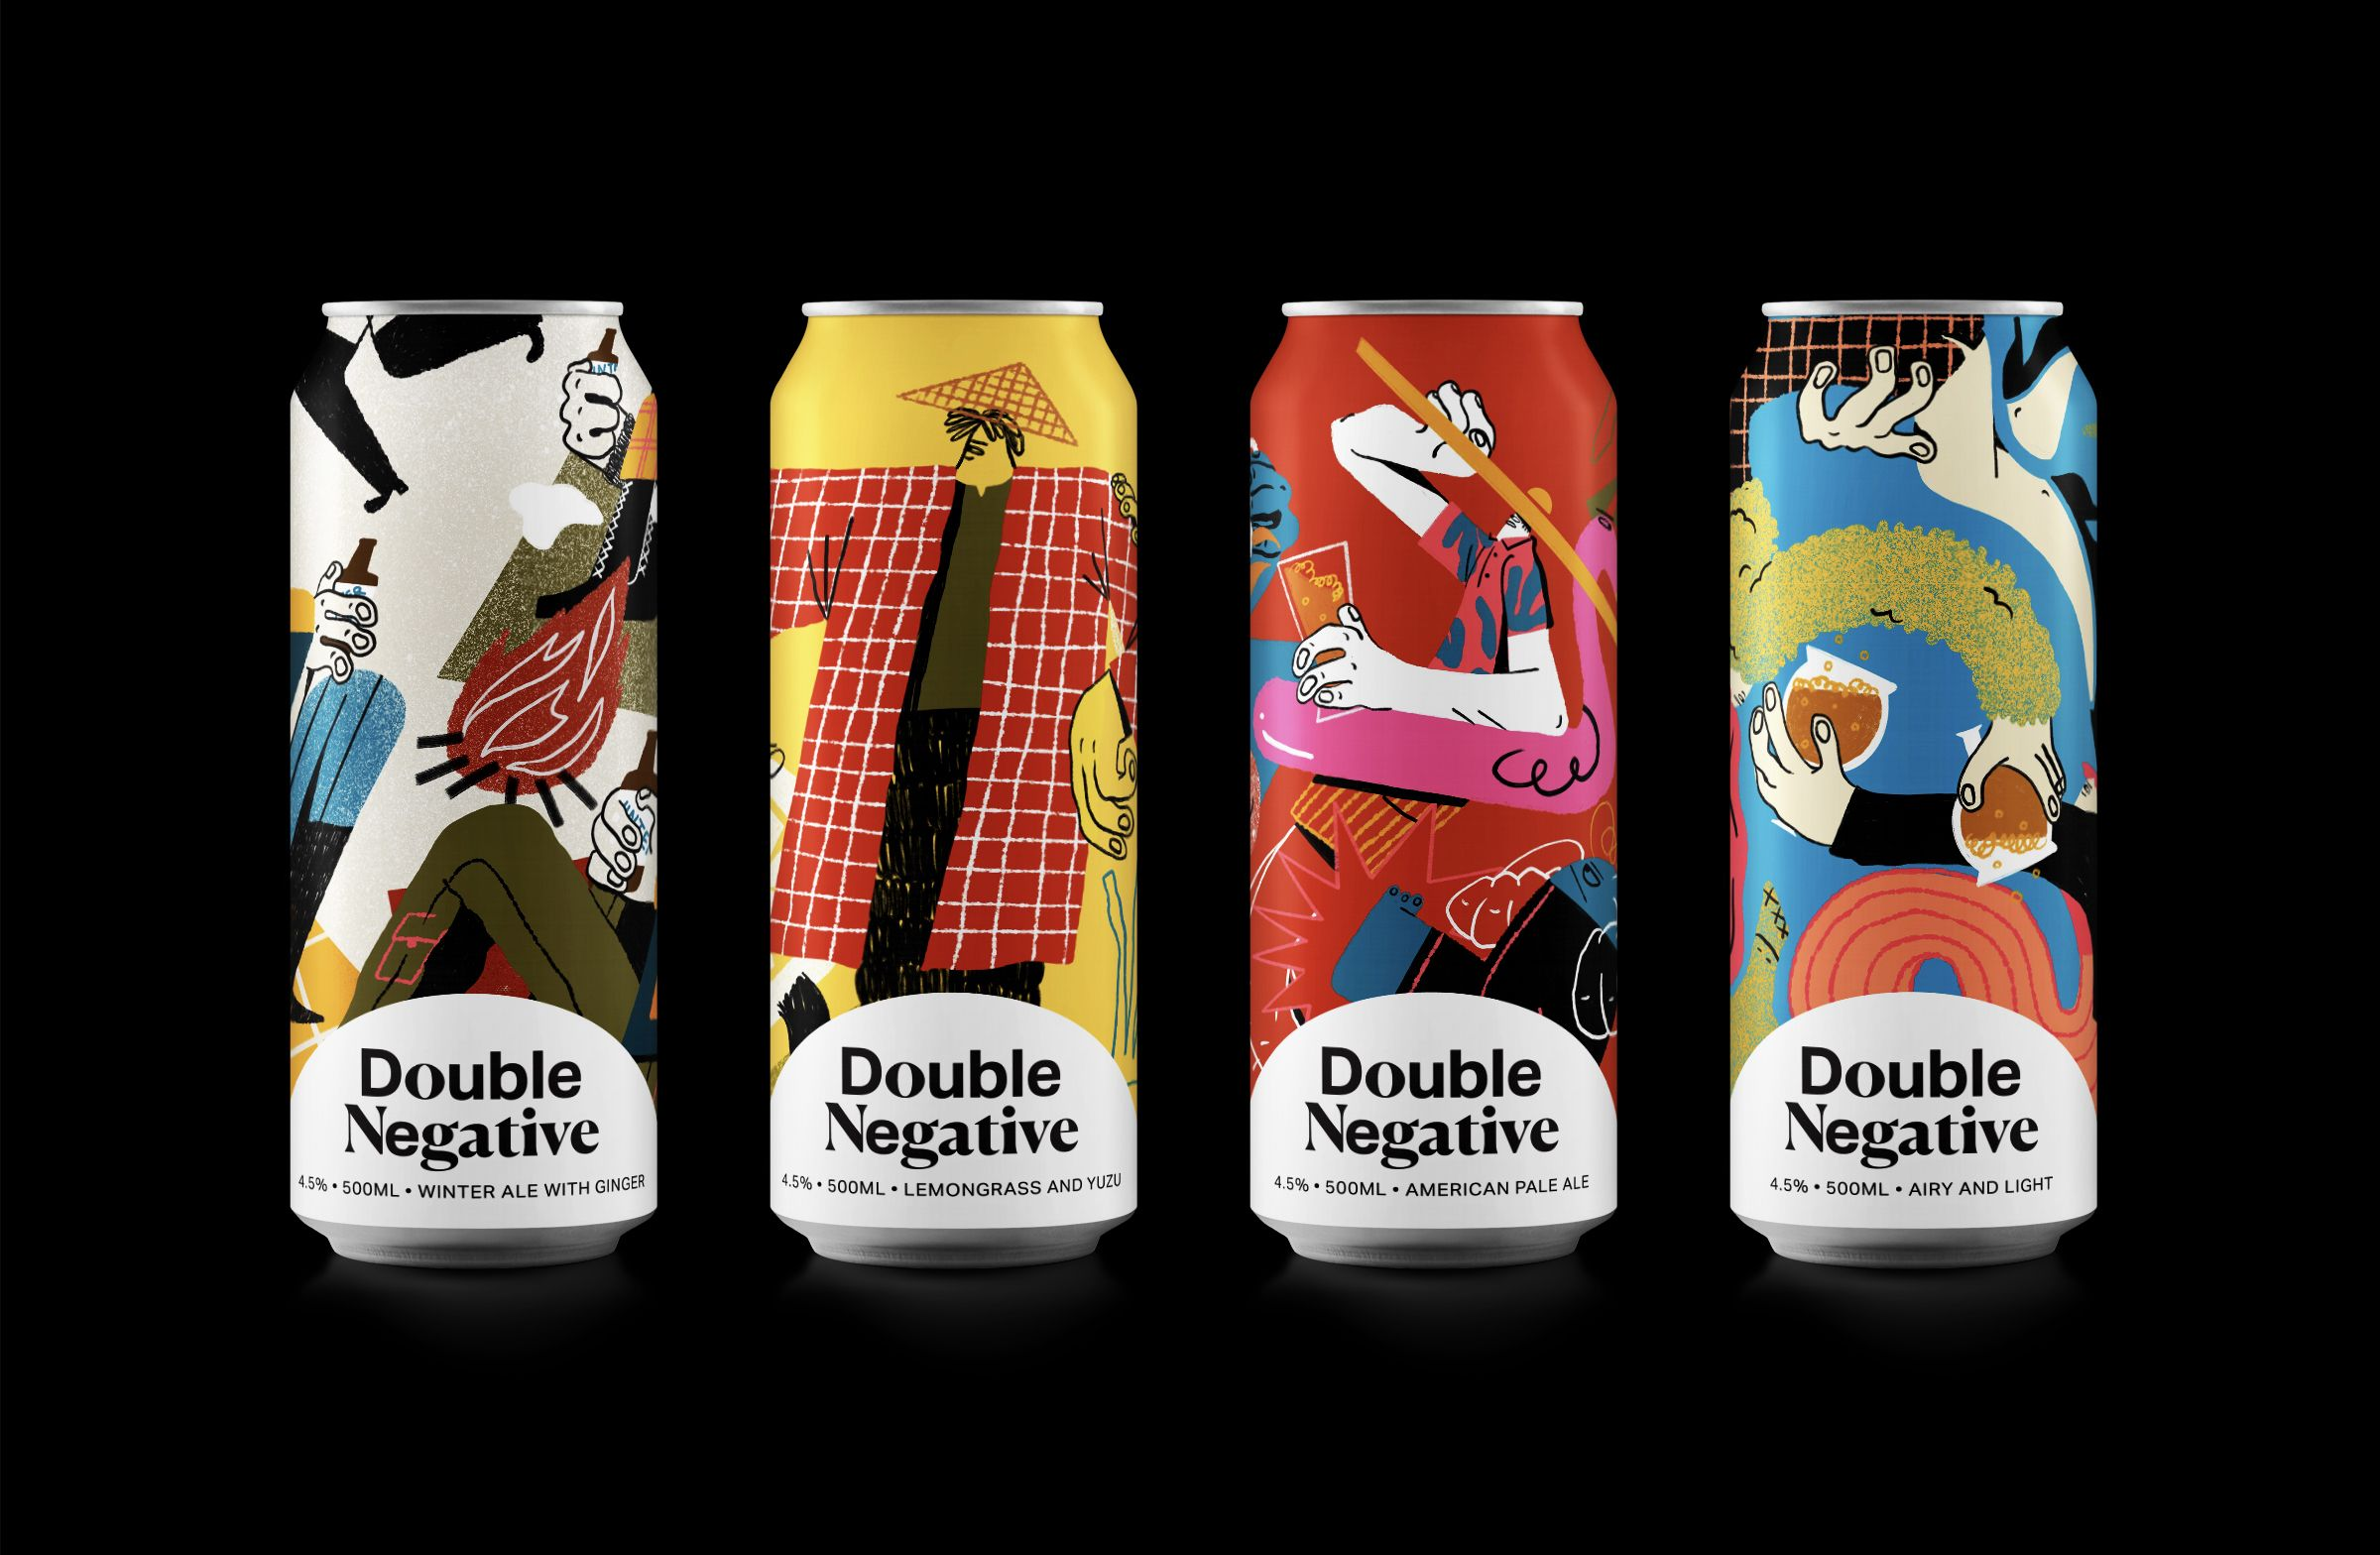 Double Negative Artisanal Brewery In 2020 Double Negative Creative Packaging Design Beer Packaging